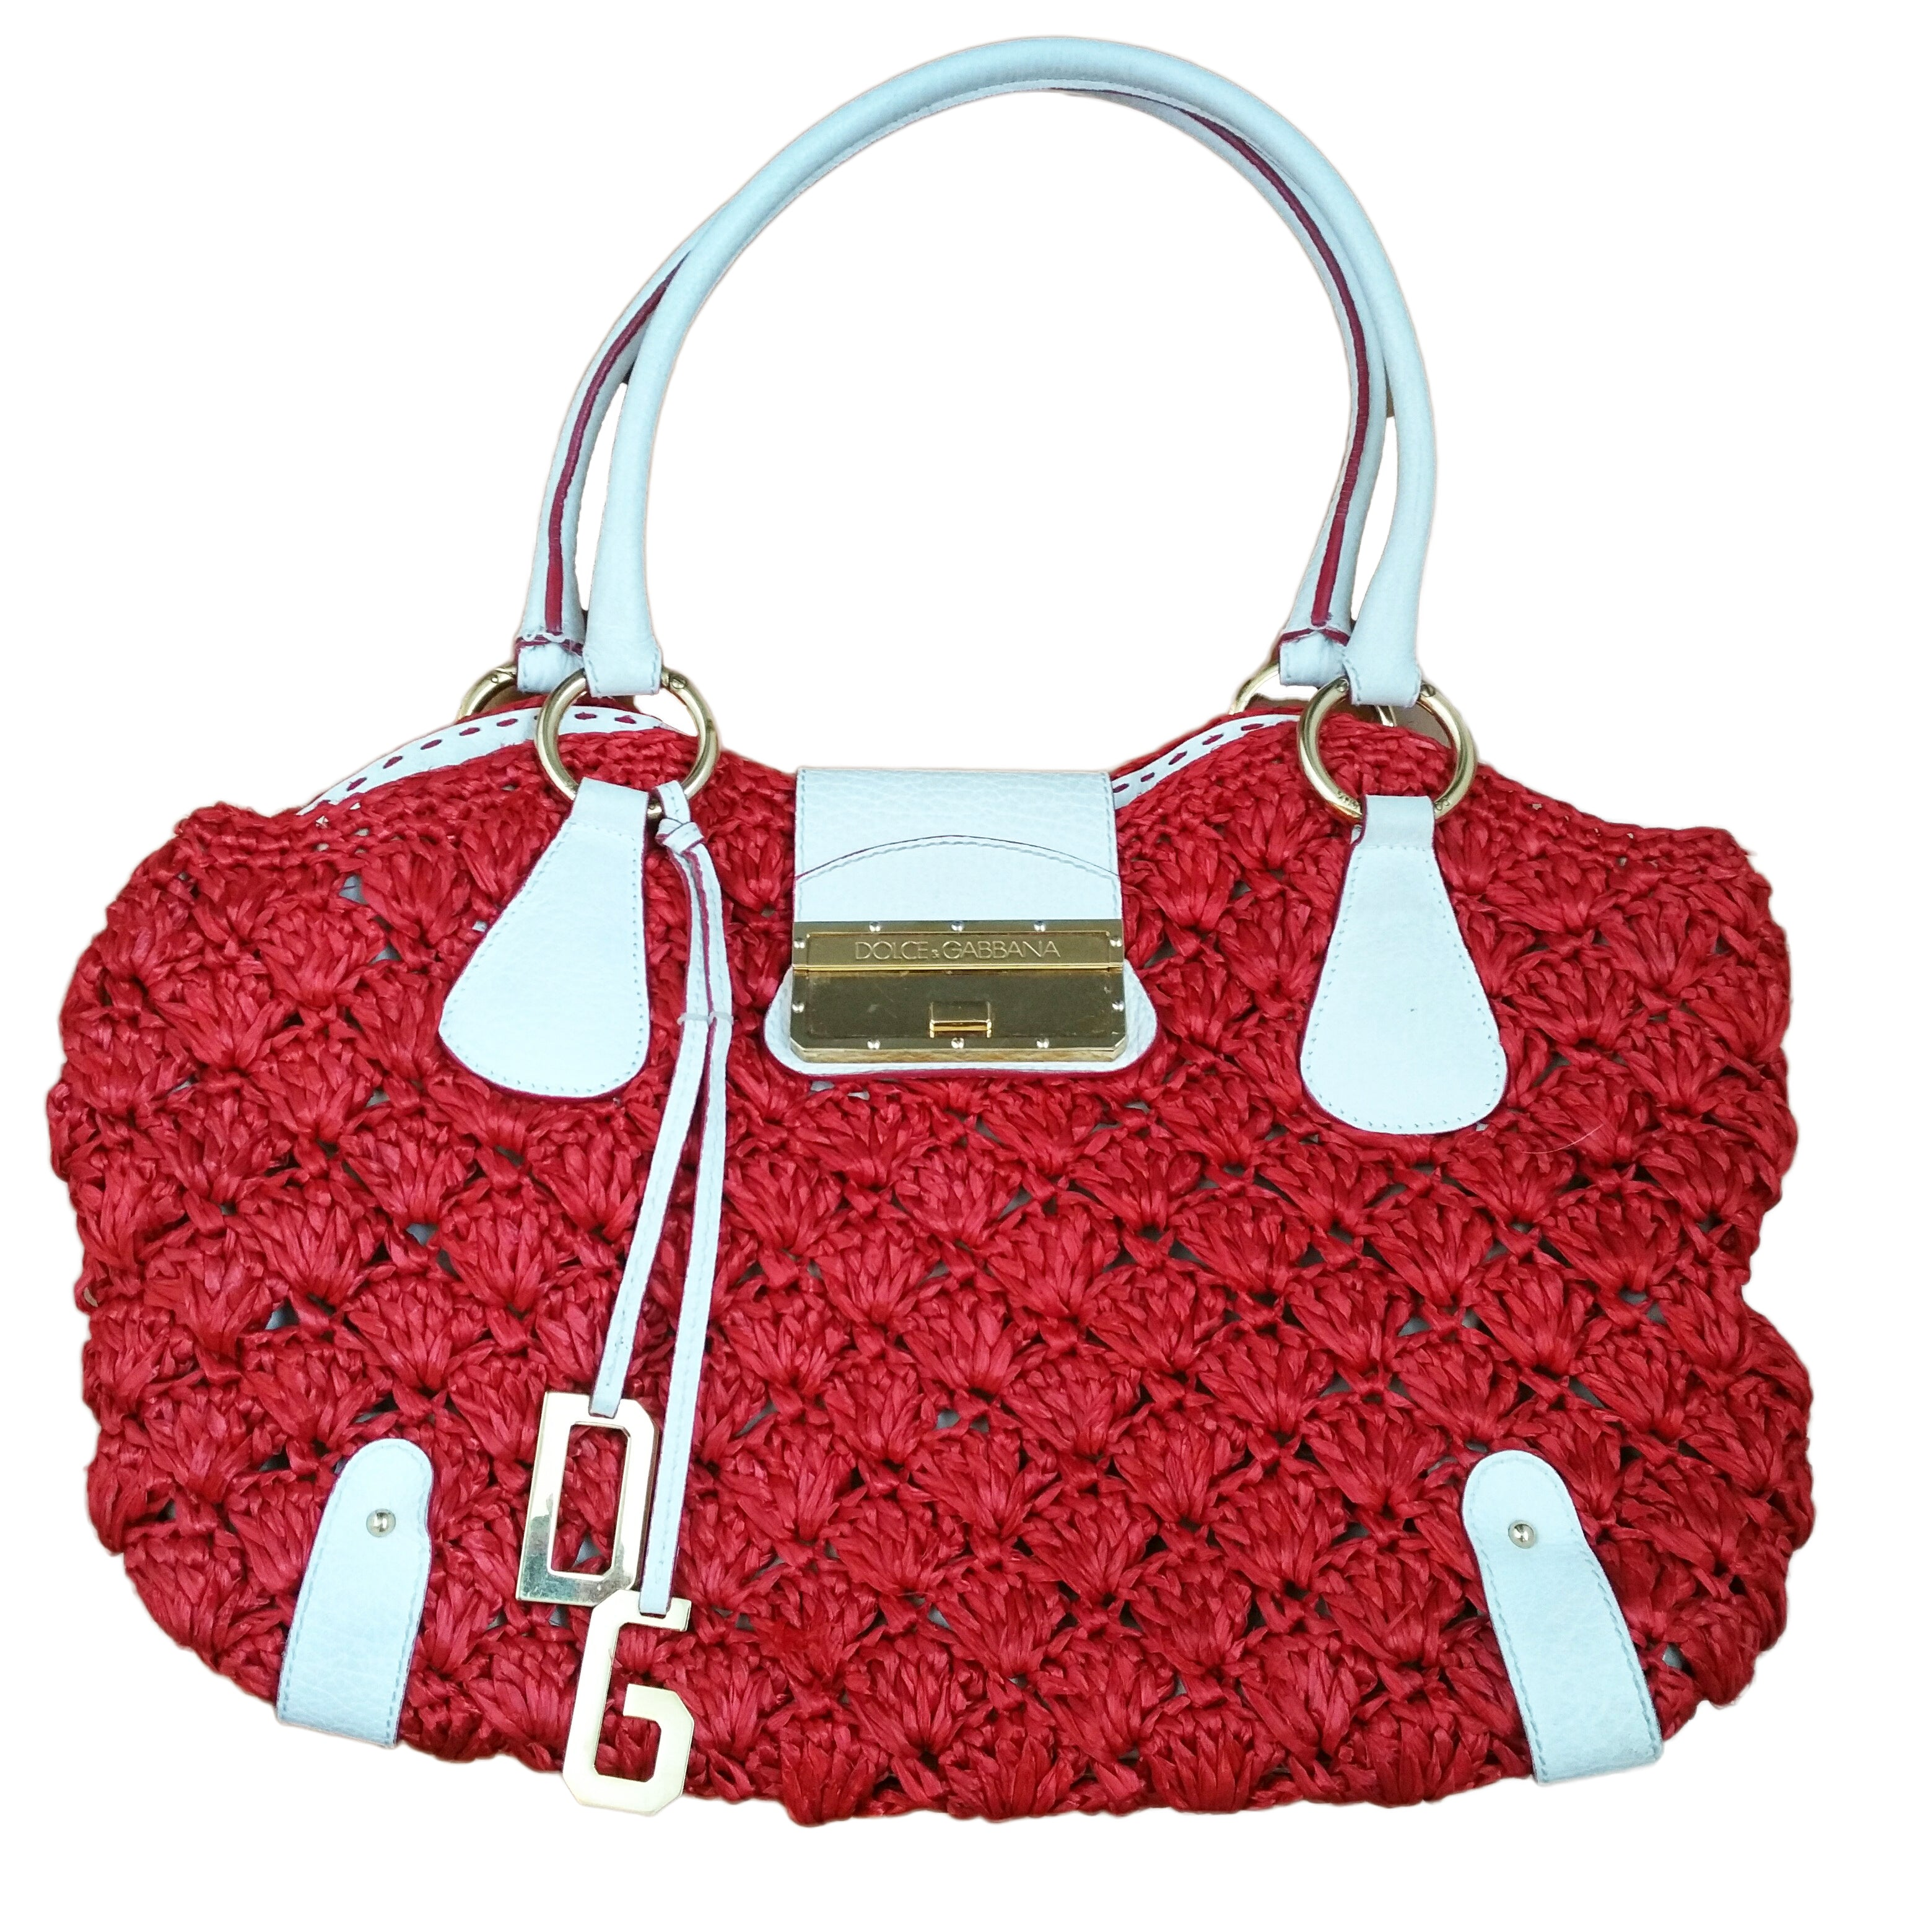 Dolce & Gabbana Red and White Handbag in Raffia and Animal Print Interior